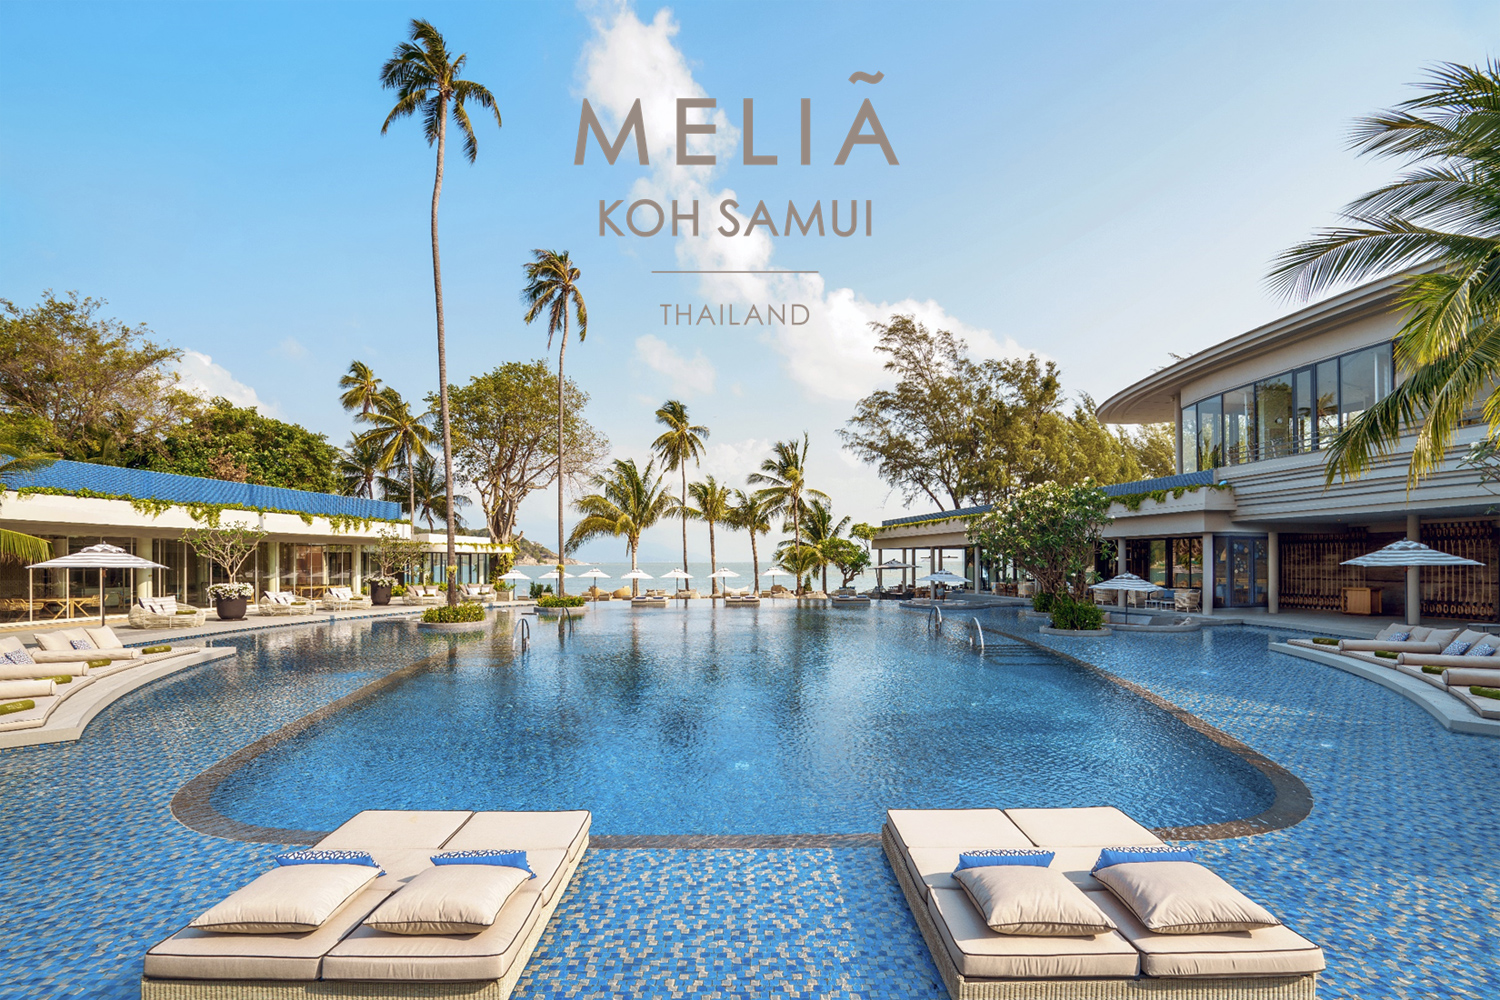 MELIÁ KOH SAMUI, ITS FIRST HOTEL IN THAILAND